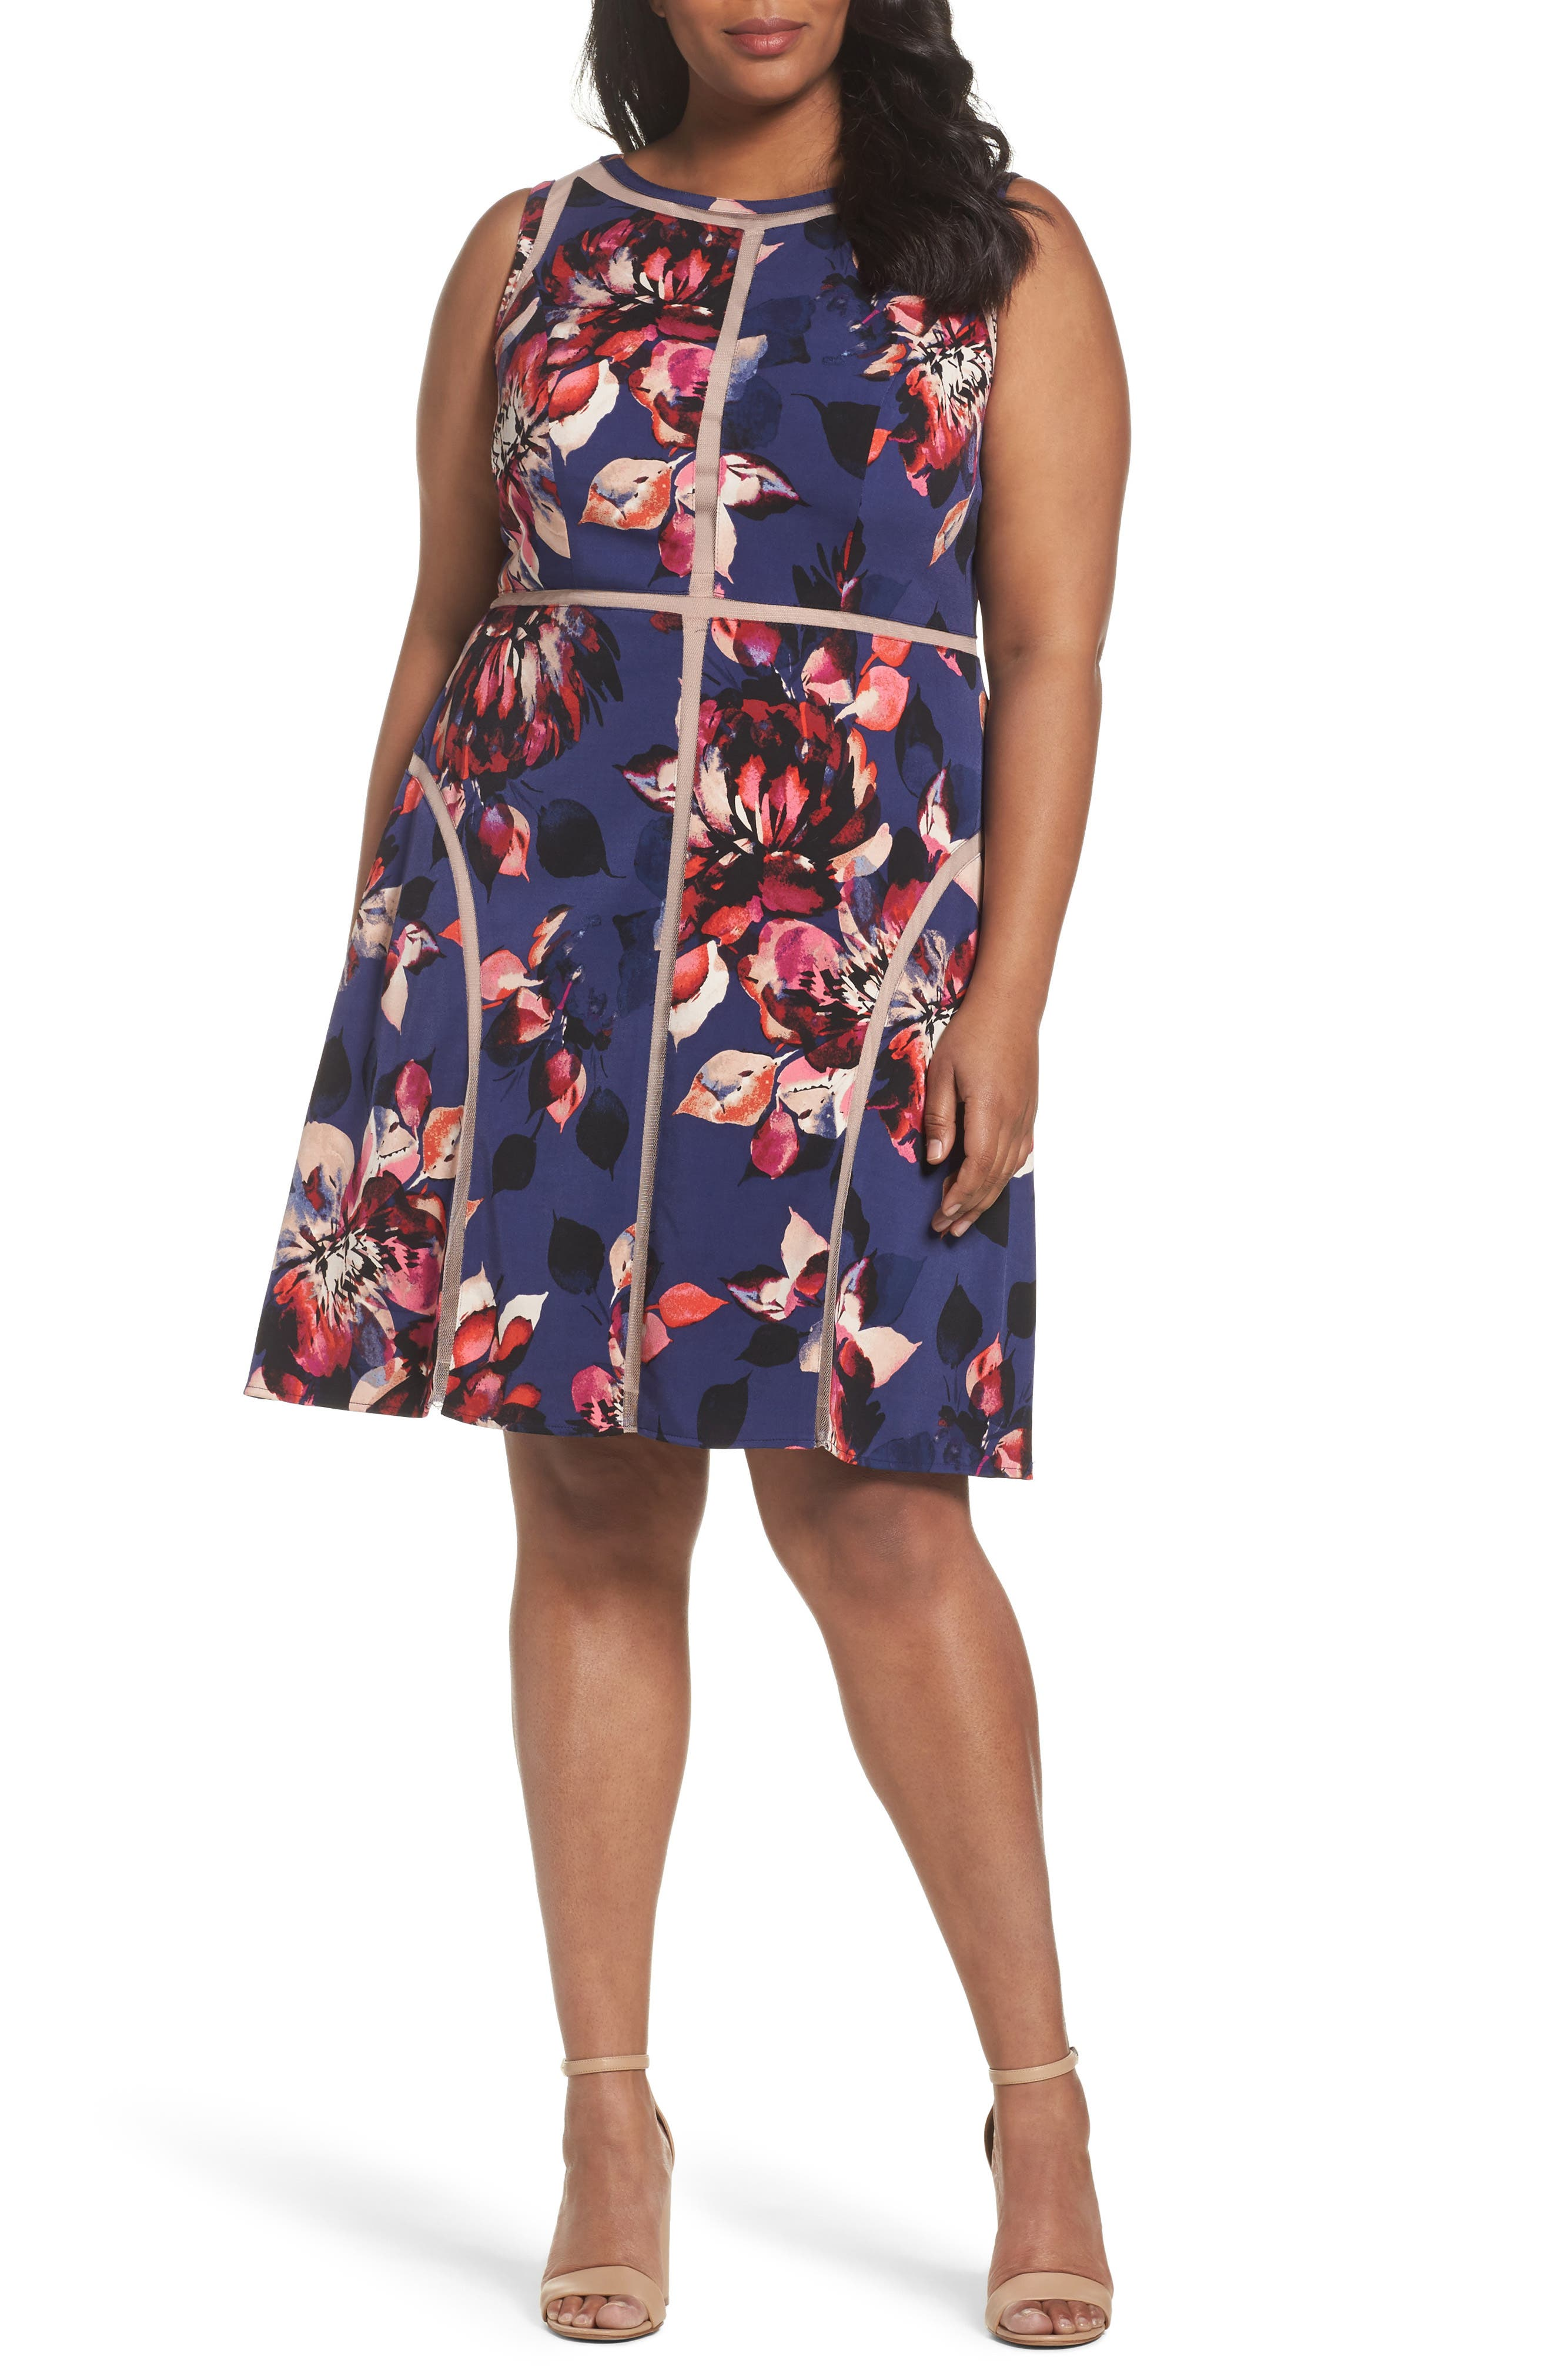 Adrianna Papell Spliced Floral Print Jersey Dress (Plus Size)